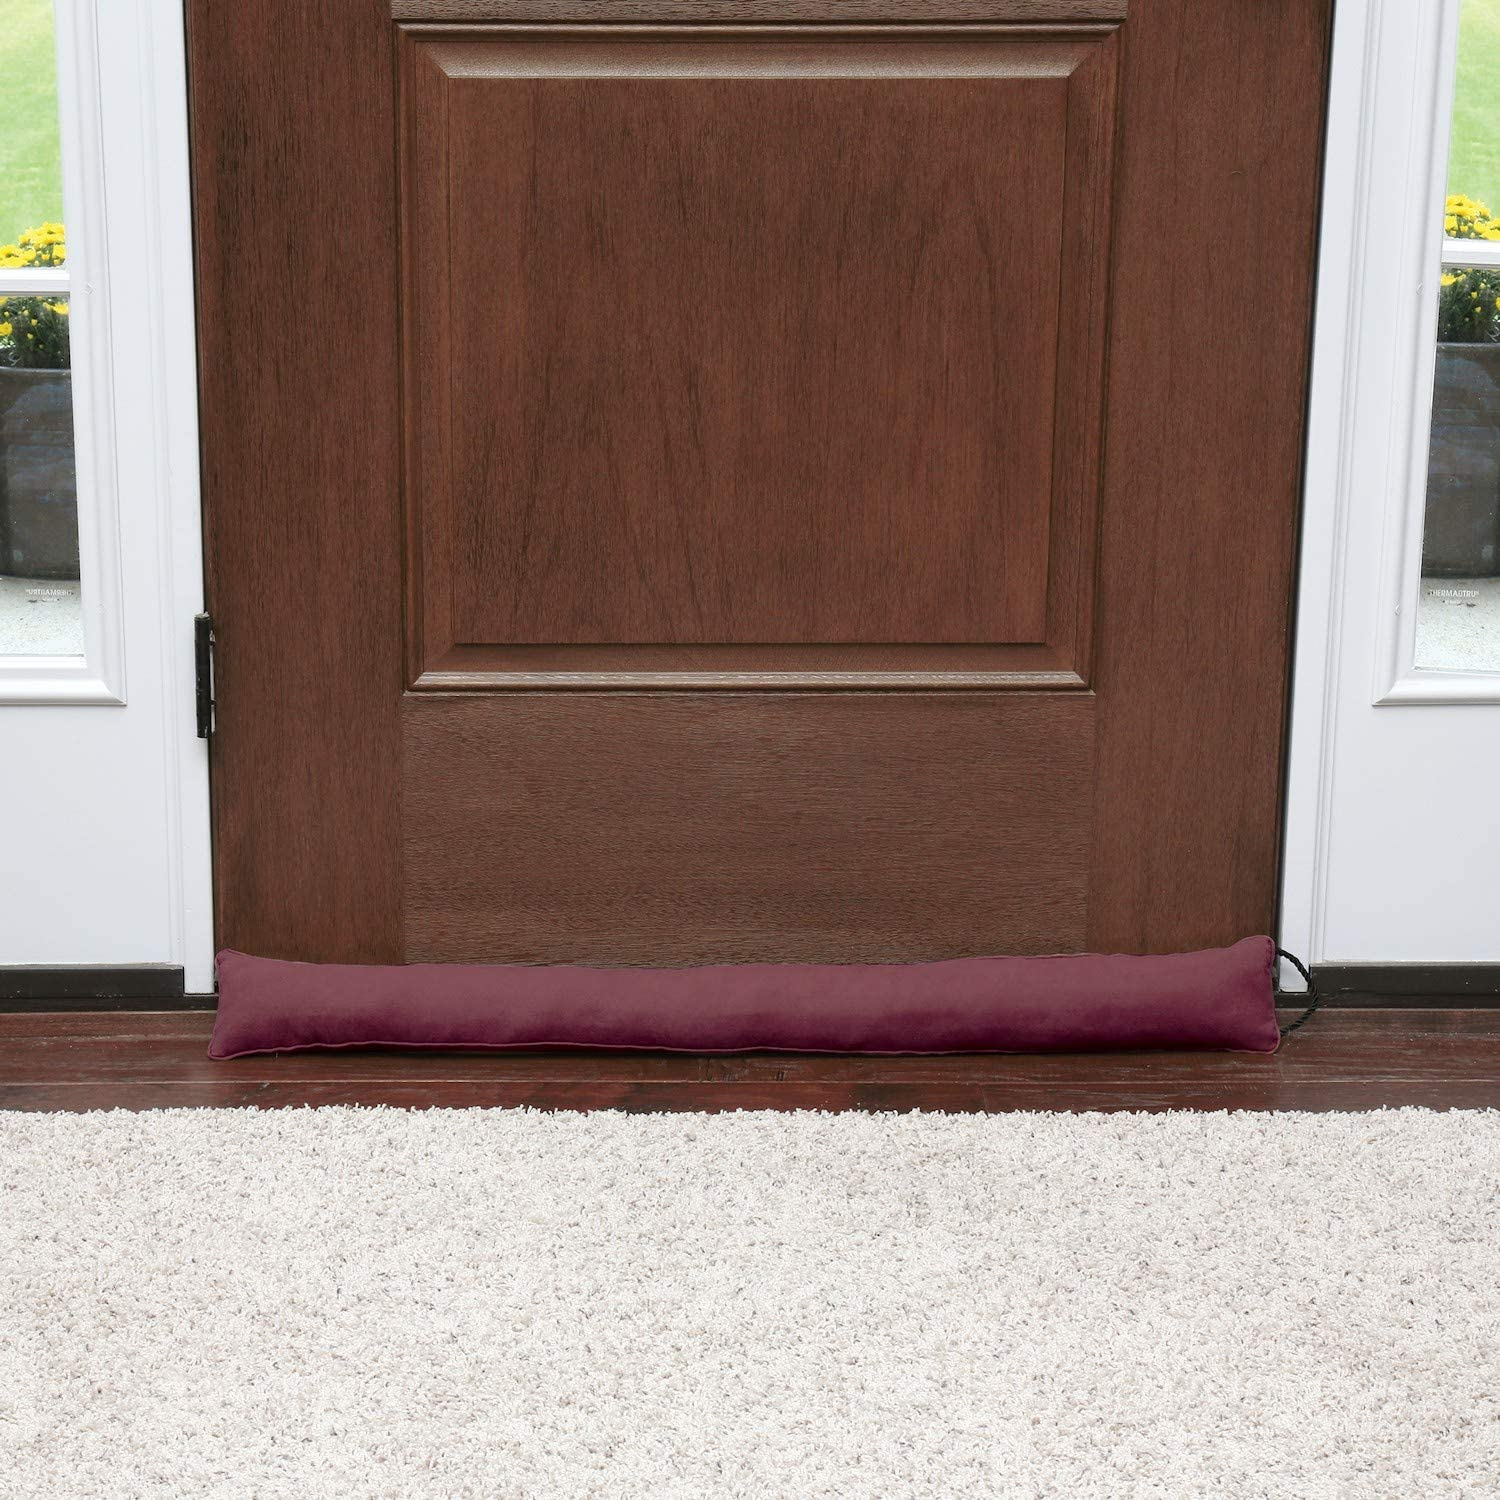 HOME DISTRICT Draft Dodger - Faux Suede Weighted Door and Window Breeze, Noise Guard Stopper Blocker - 35.5 Inches Long - Burgundy